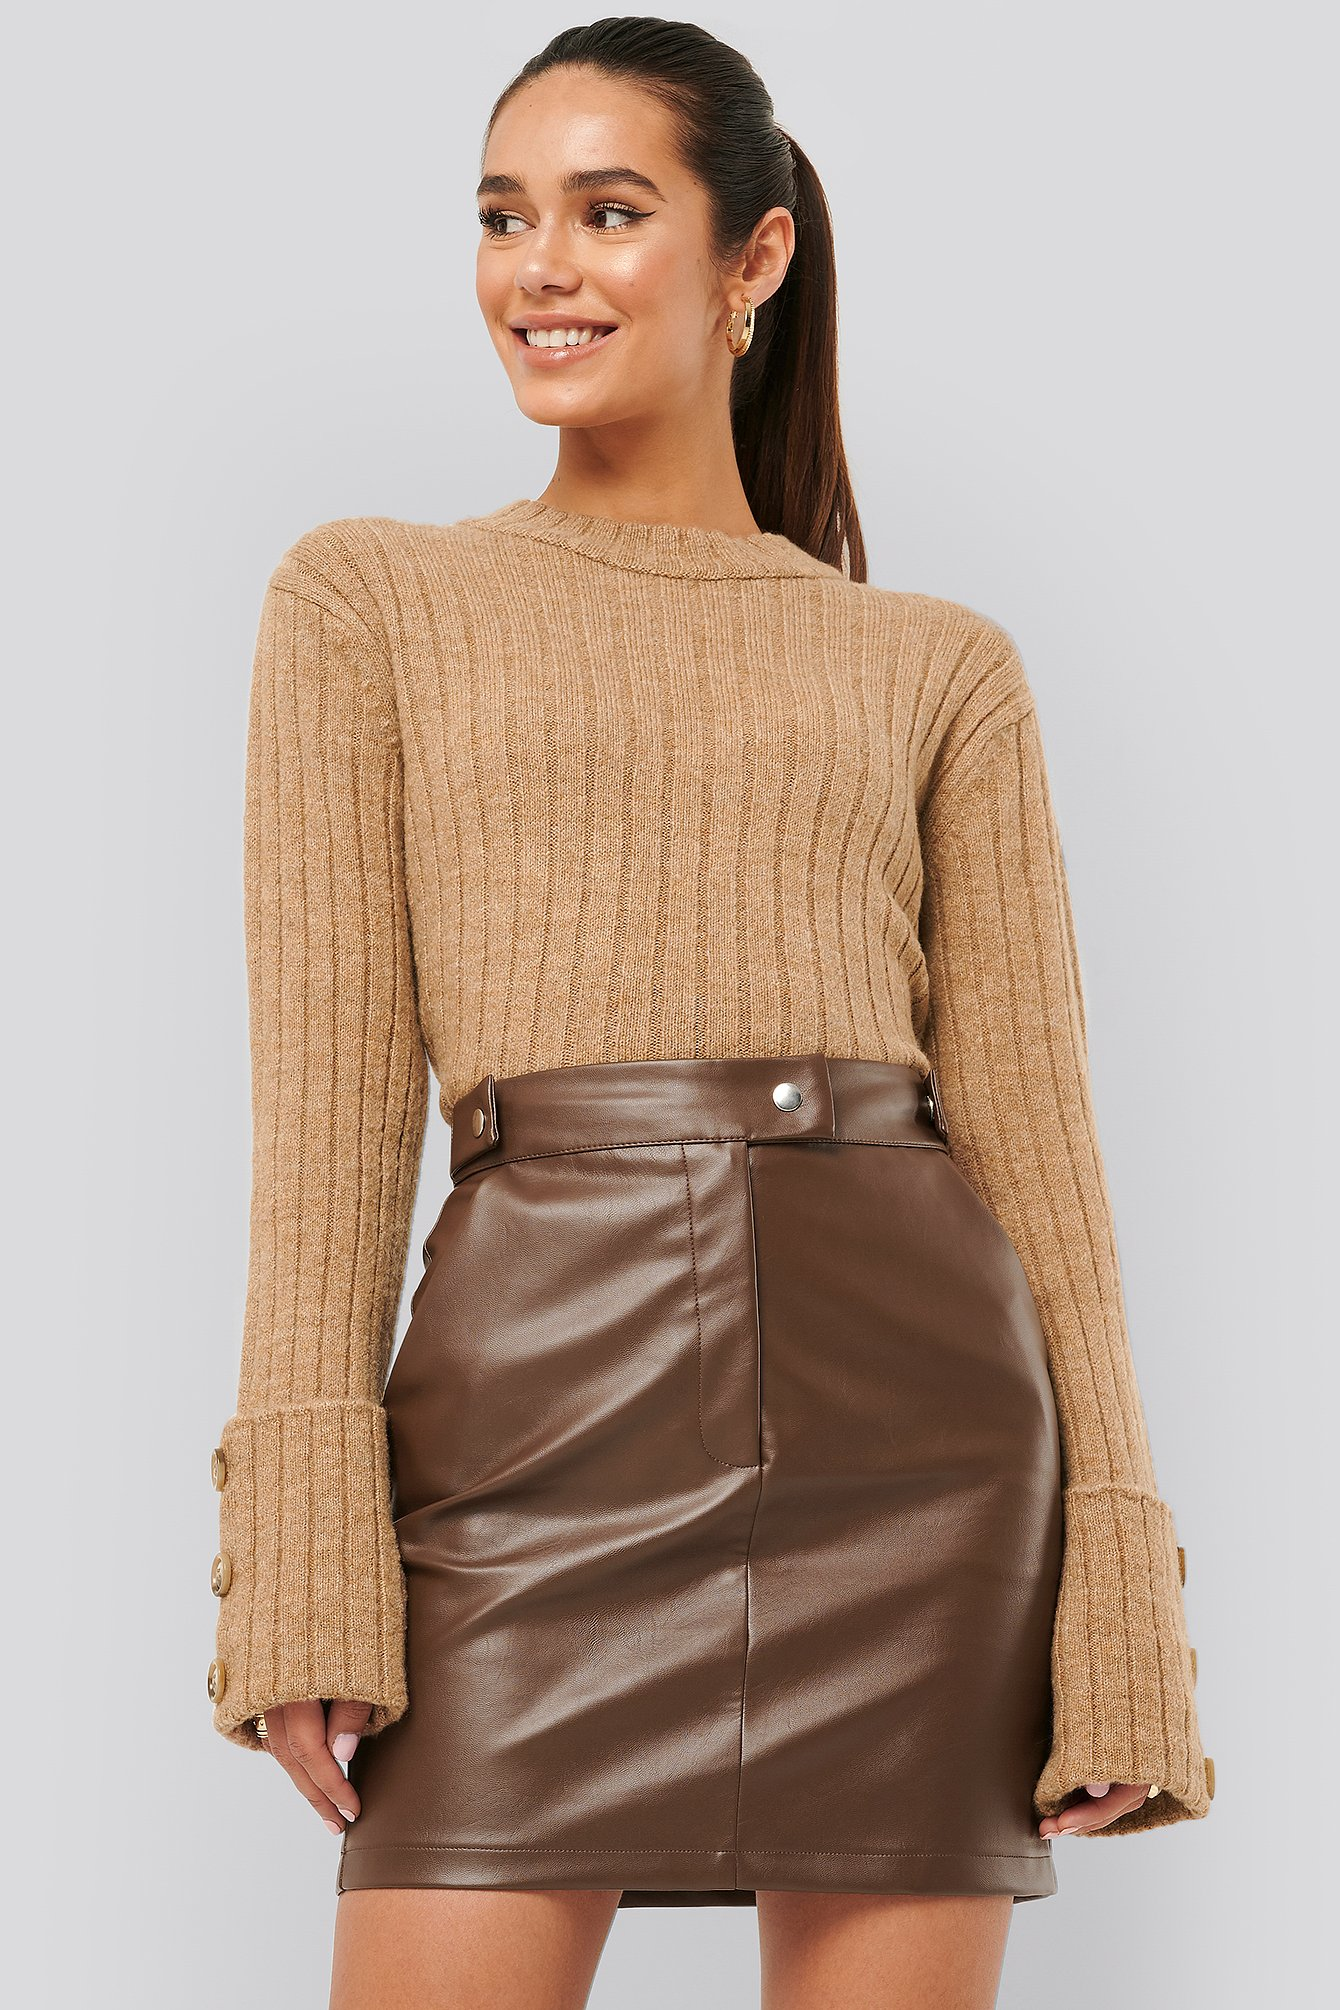 Misslisibell x NA-KD Folded Sleeve Knitted Sweater - Beige